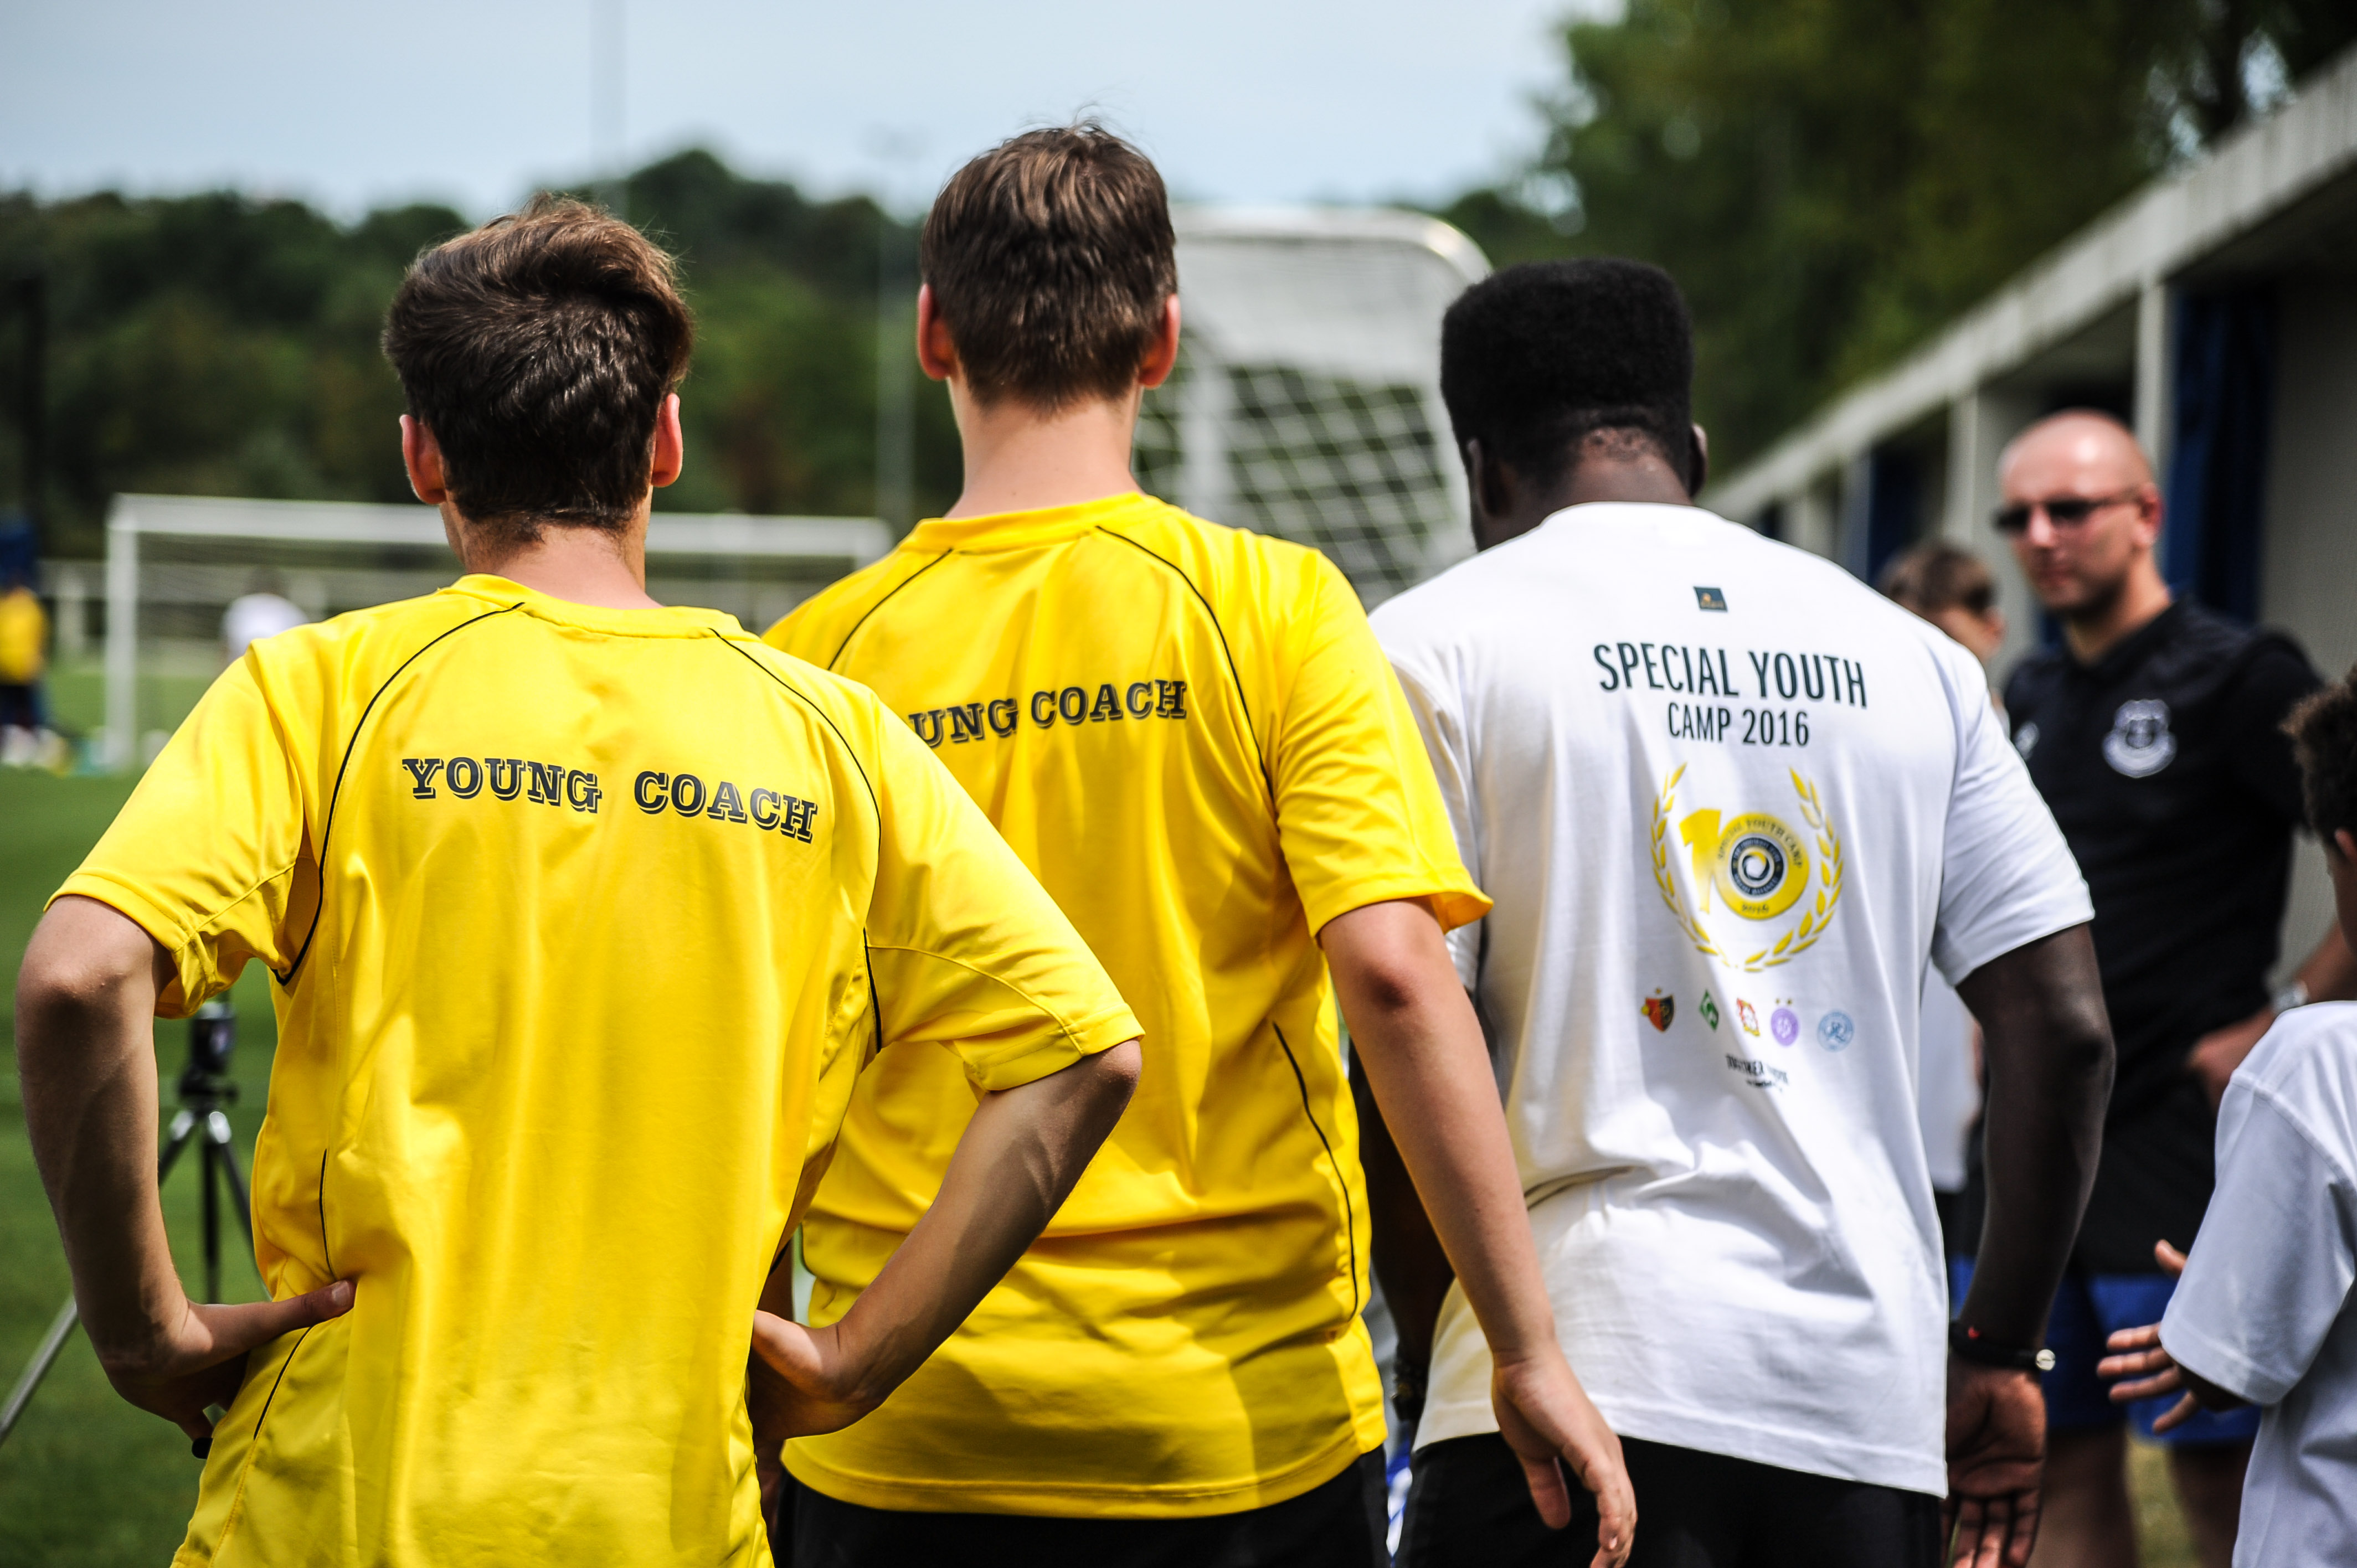 10 Jahre_Special Youth Camp_16-41